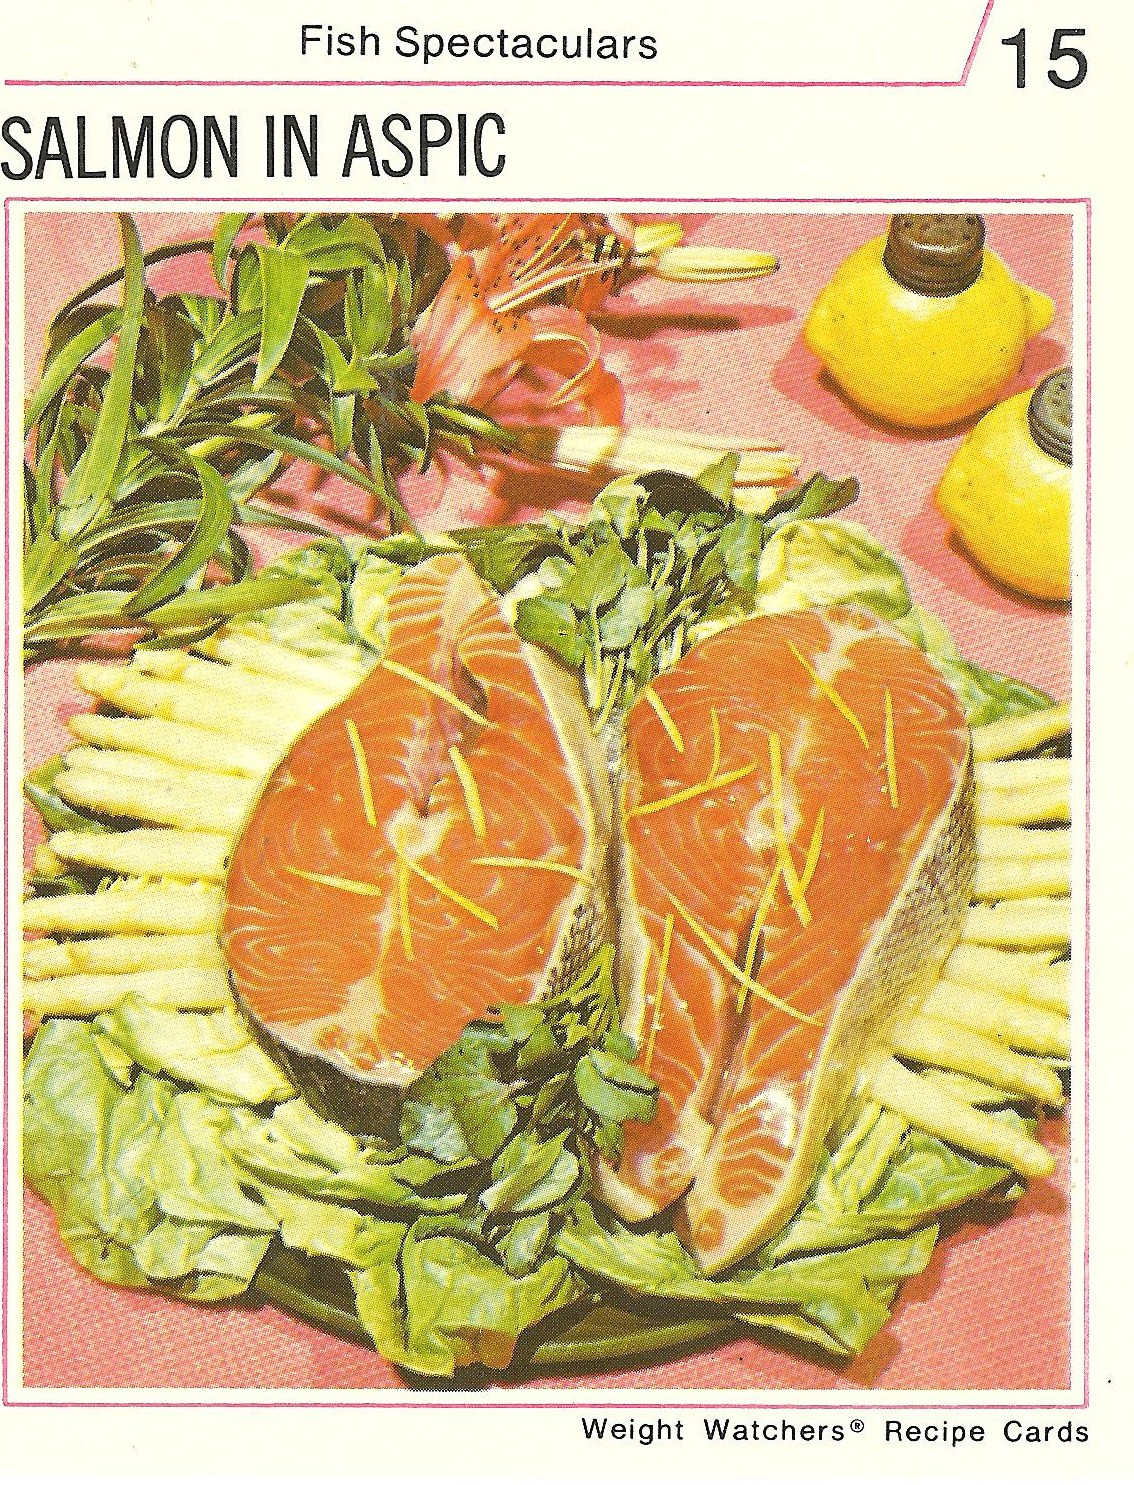 Bad and ugly of retro food watch the weight recipe cards 8 this should be a warning to all not only is the fish scary scary raw but theres hidden aspic on it somewhere forumfinder Gallery